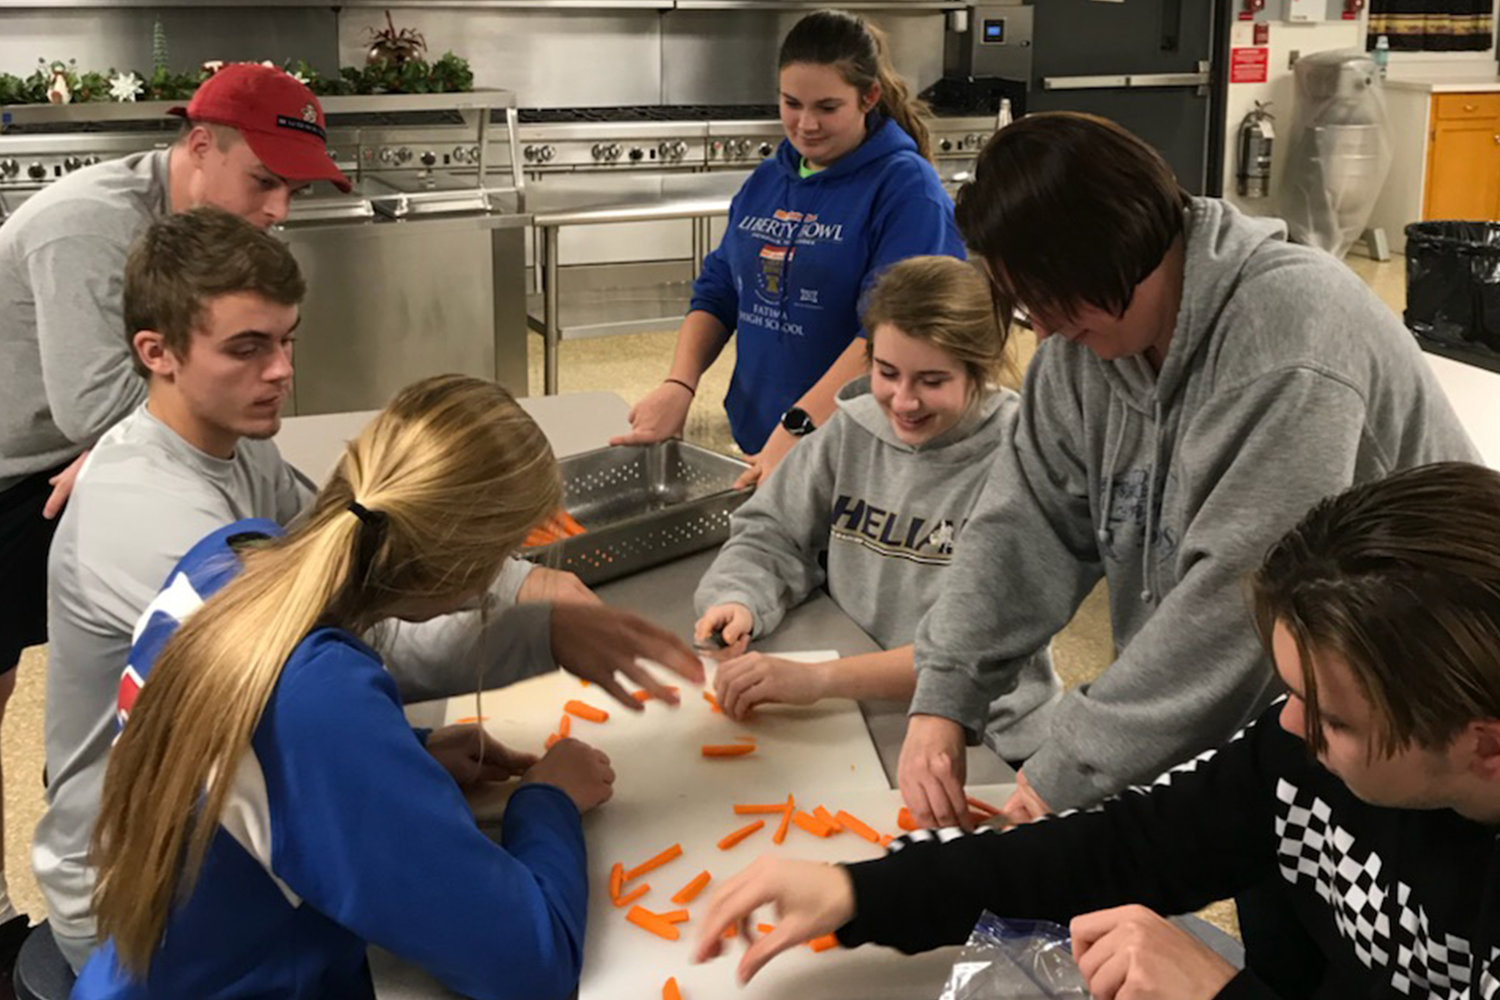 Confirmation candidates from St. Stanislaus parish in Wardsville prepare, serve and clean-up after dinner at the Salvation Army's Center of Hope in Jefferson City.